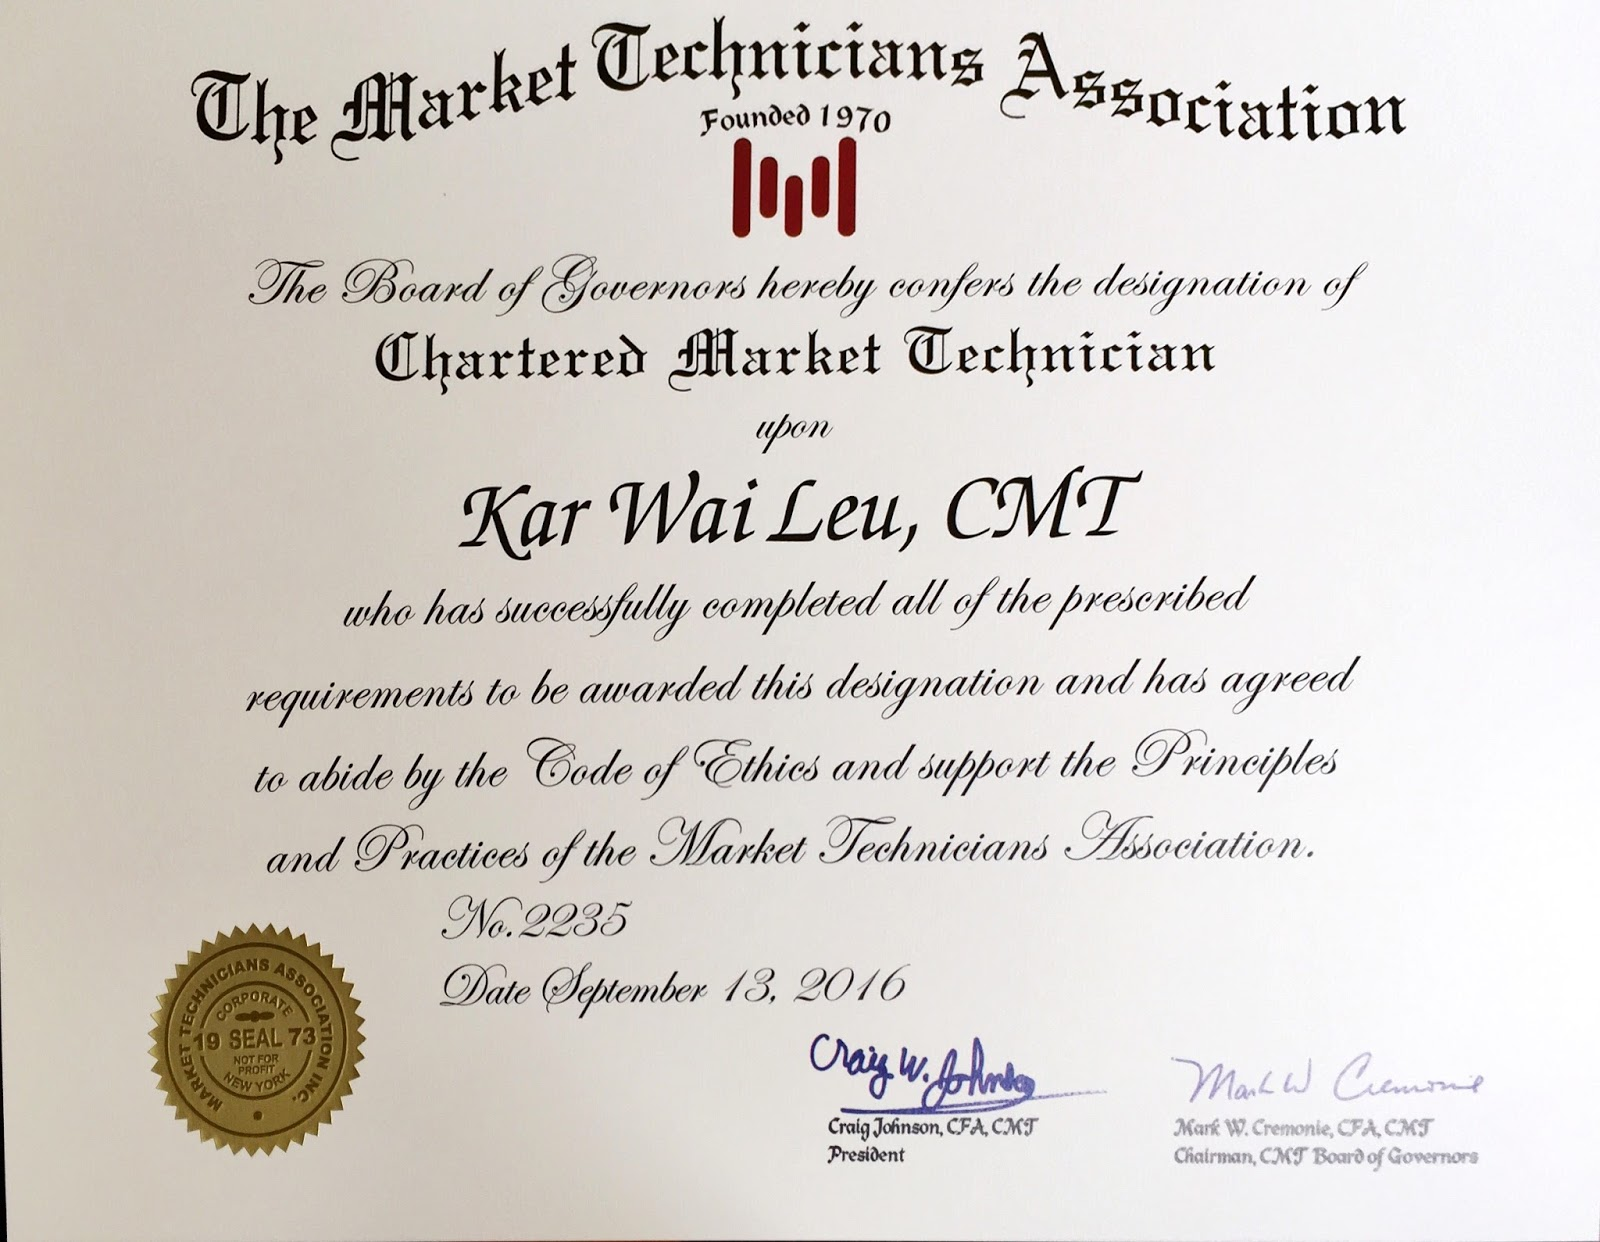 The market technician profile cmt certification 1betcityfo Image collections